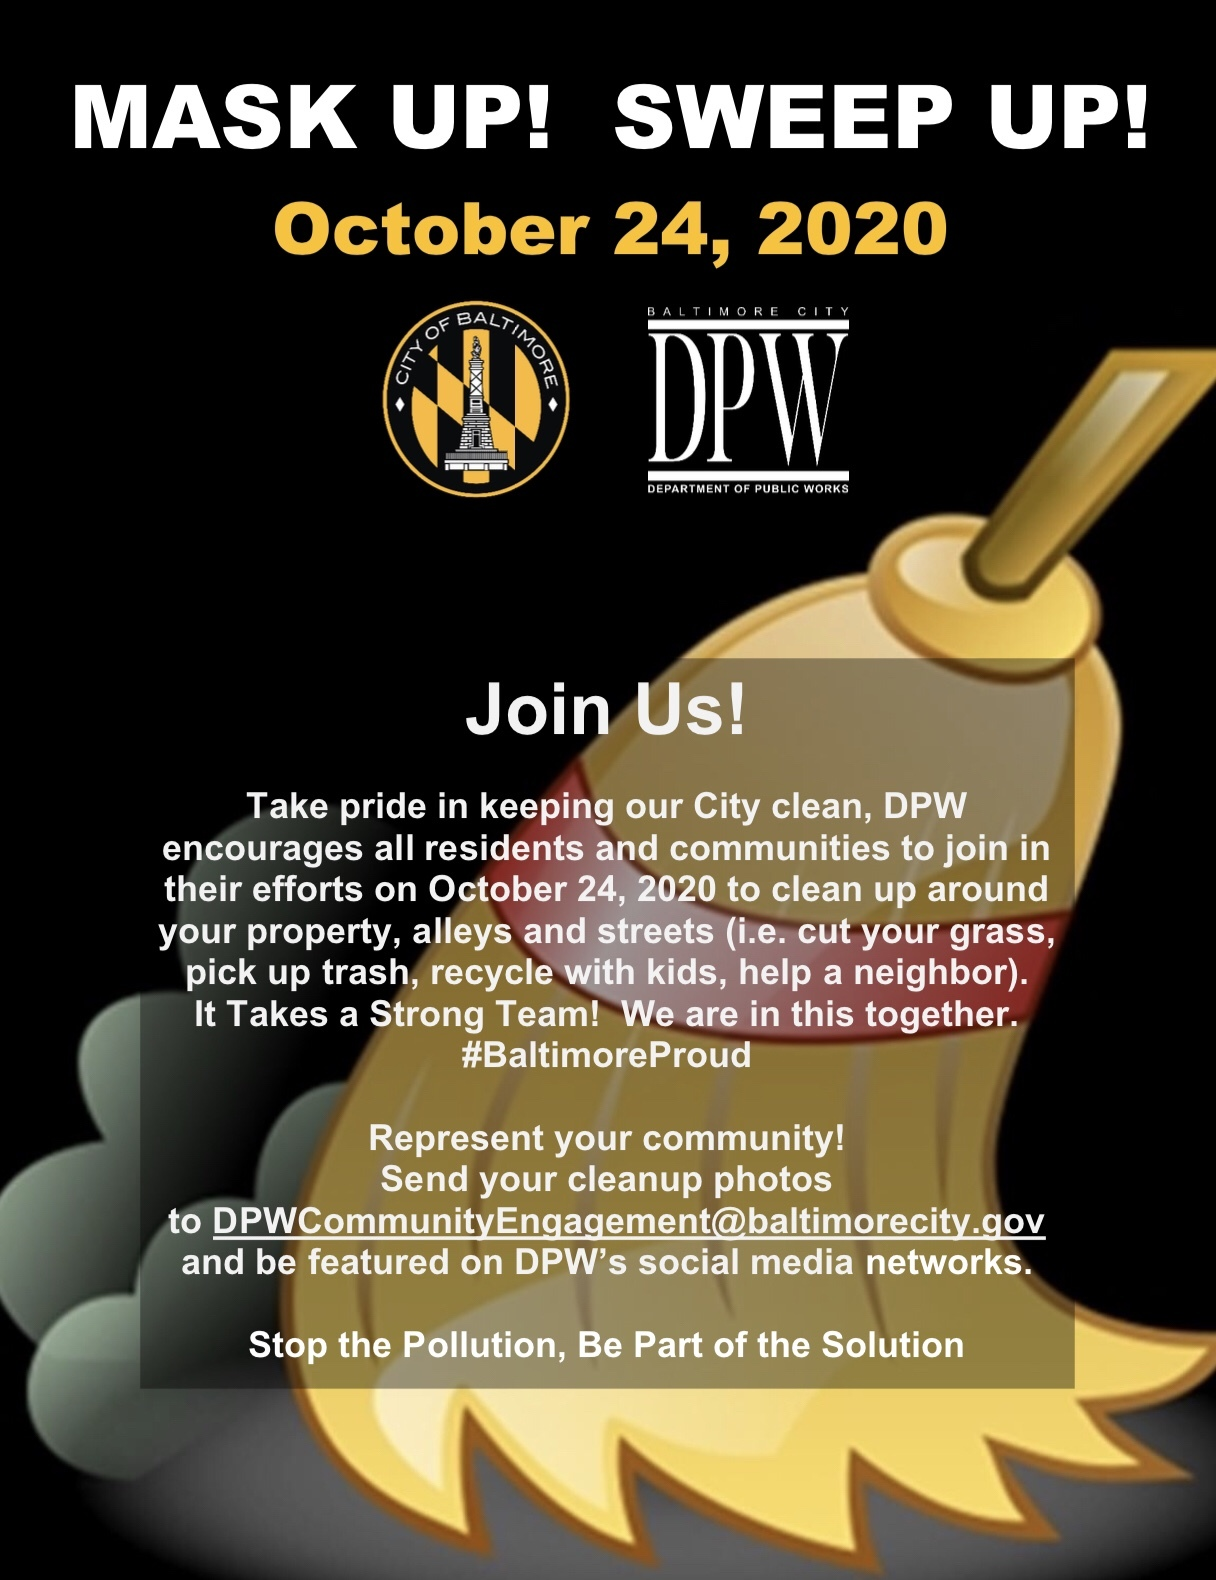 flyer for Oct. 24, 2020, Mask Up! Sweep Up! Day